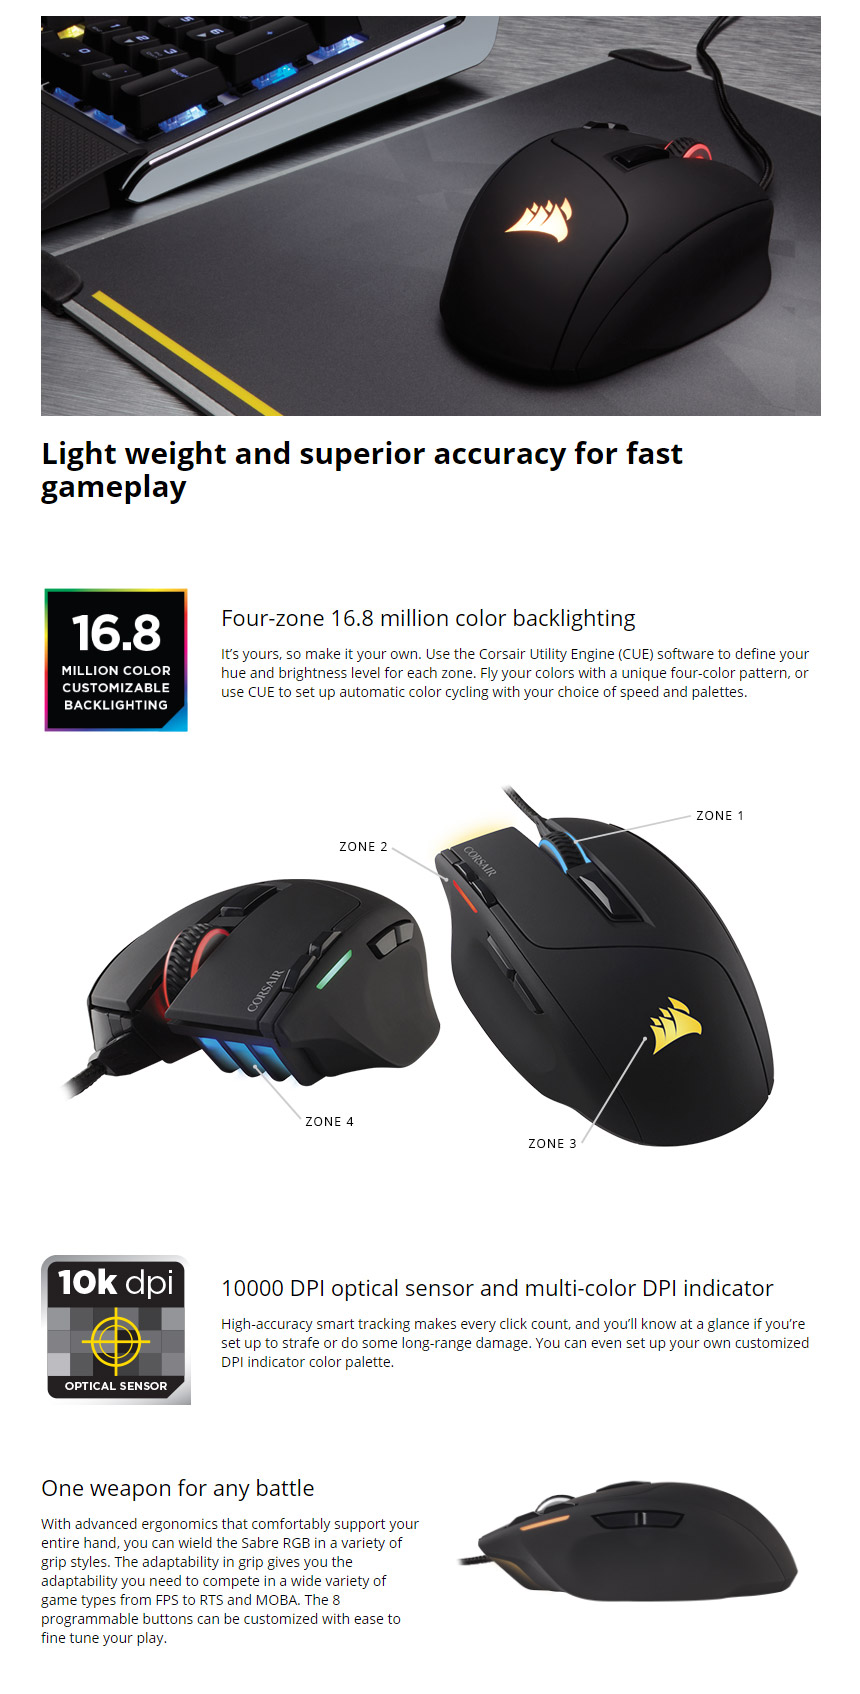 c47cee415e6 ... Corsair Gaming Sabre RGB 10,000 DPI gaming mouse offers easy comfort  and fluid reach balanced by consistently accurate tracking, a 1,000 Hz  refresh rate ...